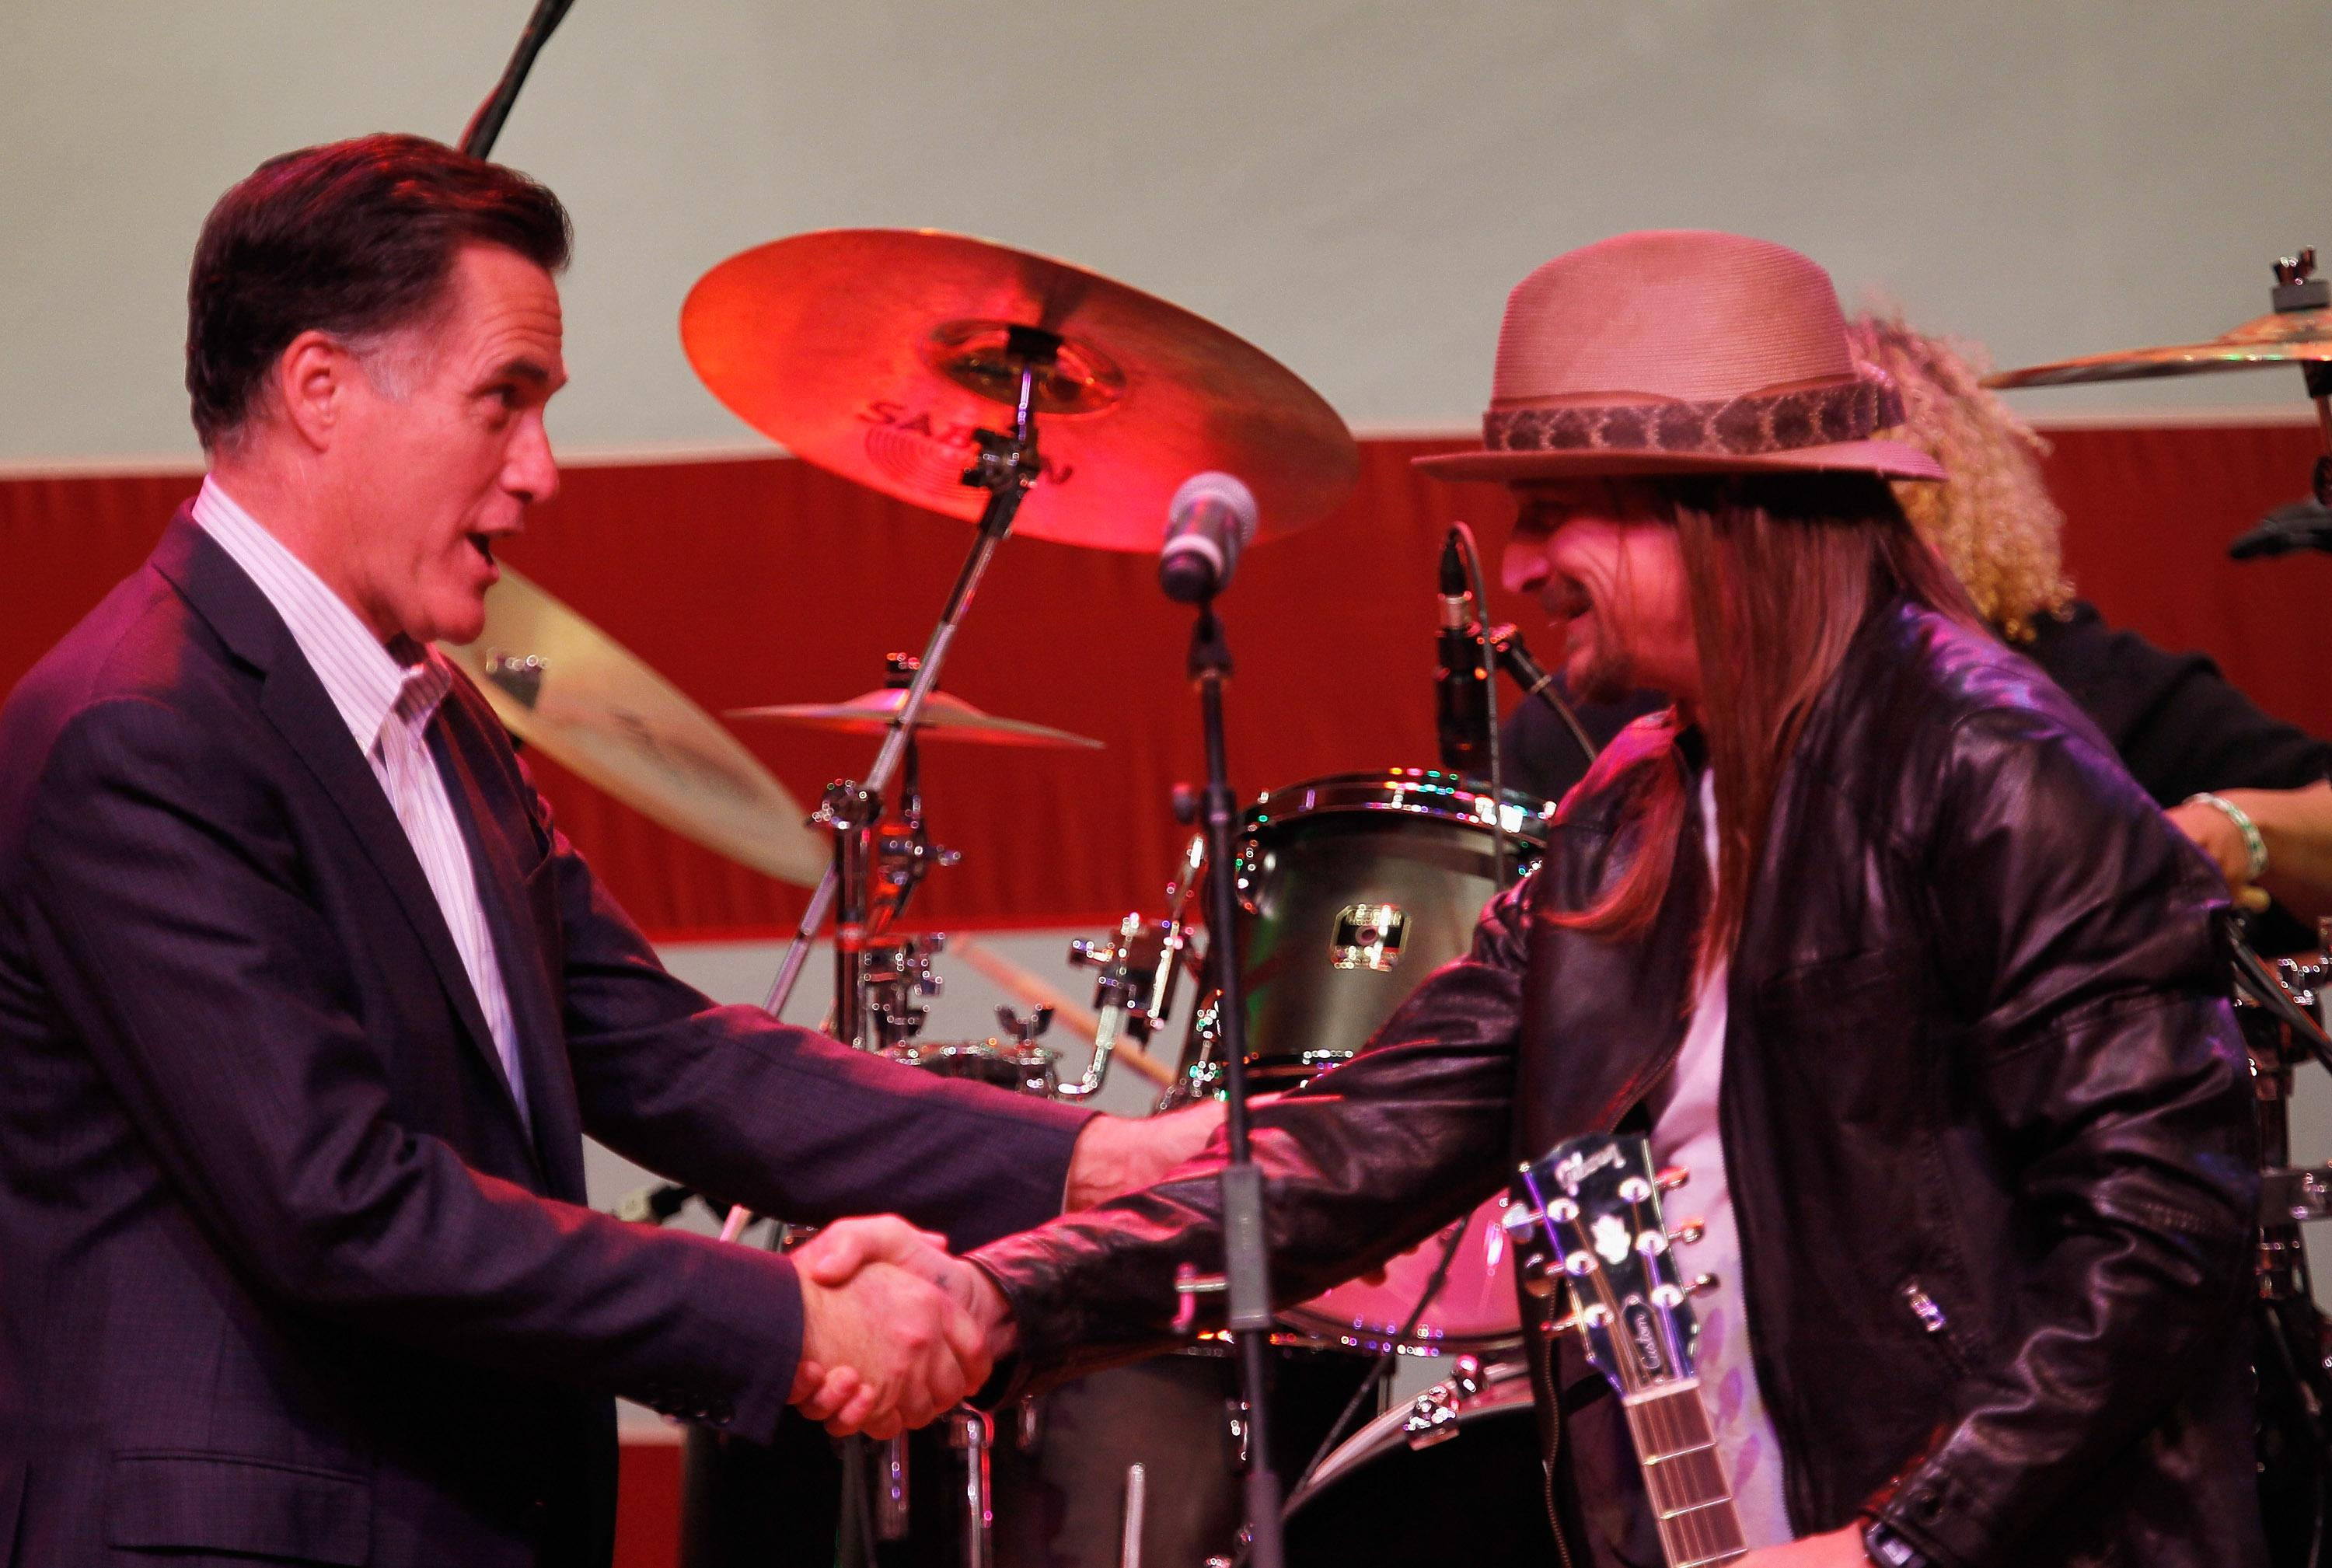 ROYAL OAK, MI - FEBRUARY 27: Republican presidential candidate, former Massachusetts Gov. Mitt Romney shakes hands with musician Kid Rock during a campaign event at the Royal Oak Music Theatre on February 27, 2012 in Royal Oak, Michigan. Michigan residents will go to the polls on February 28 to vote for their choice in the Republican presidential race. (Photo by Joe Raedle/Getty Images)